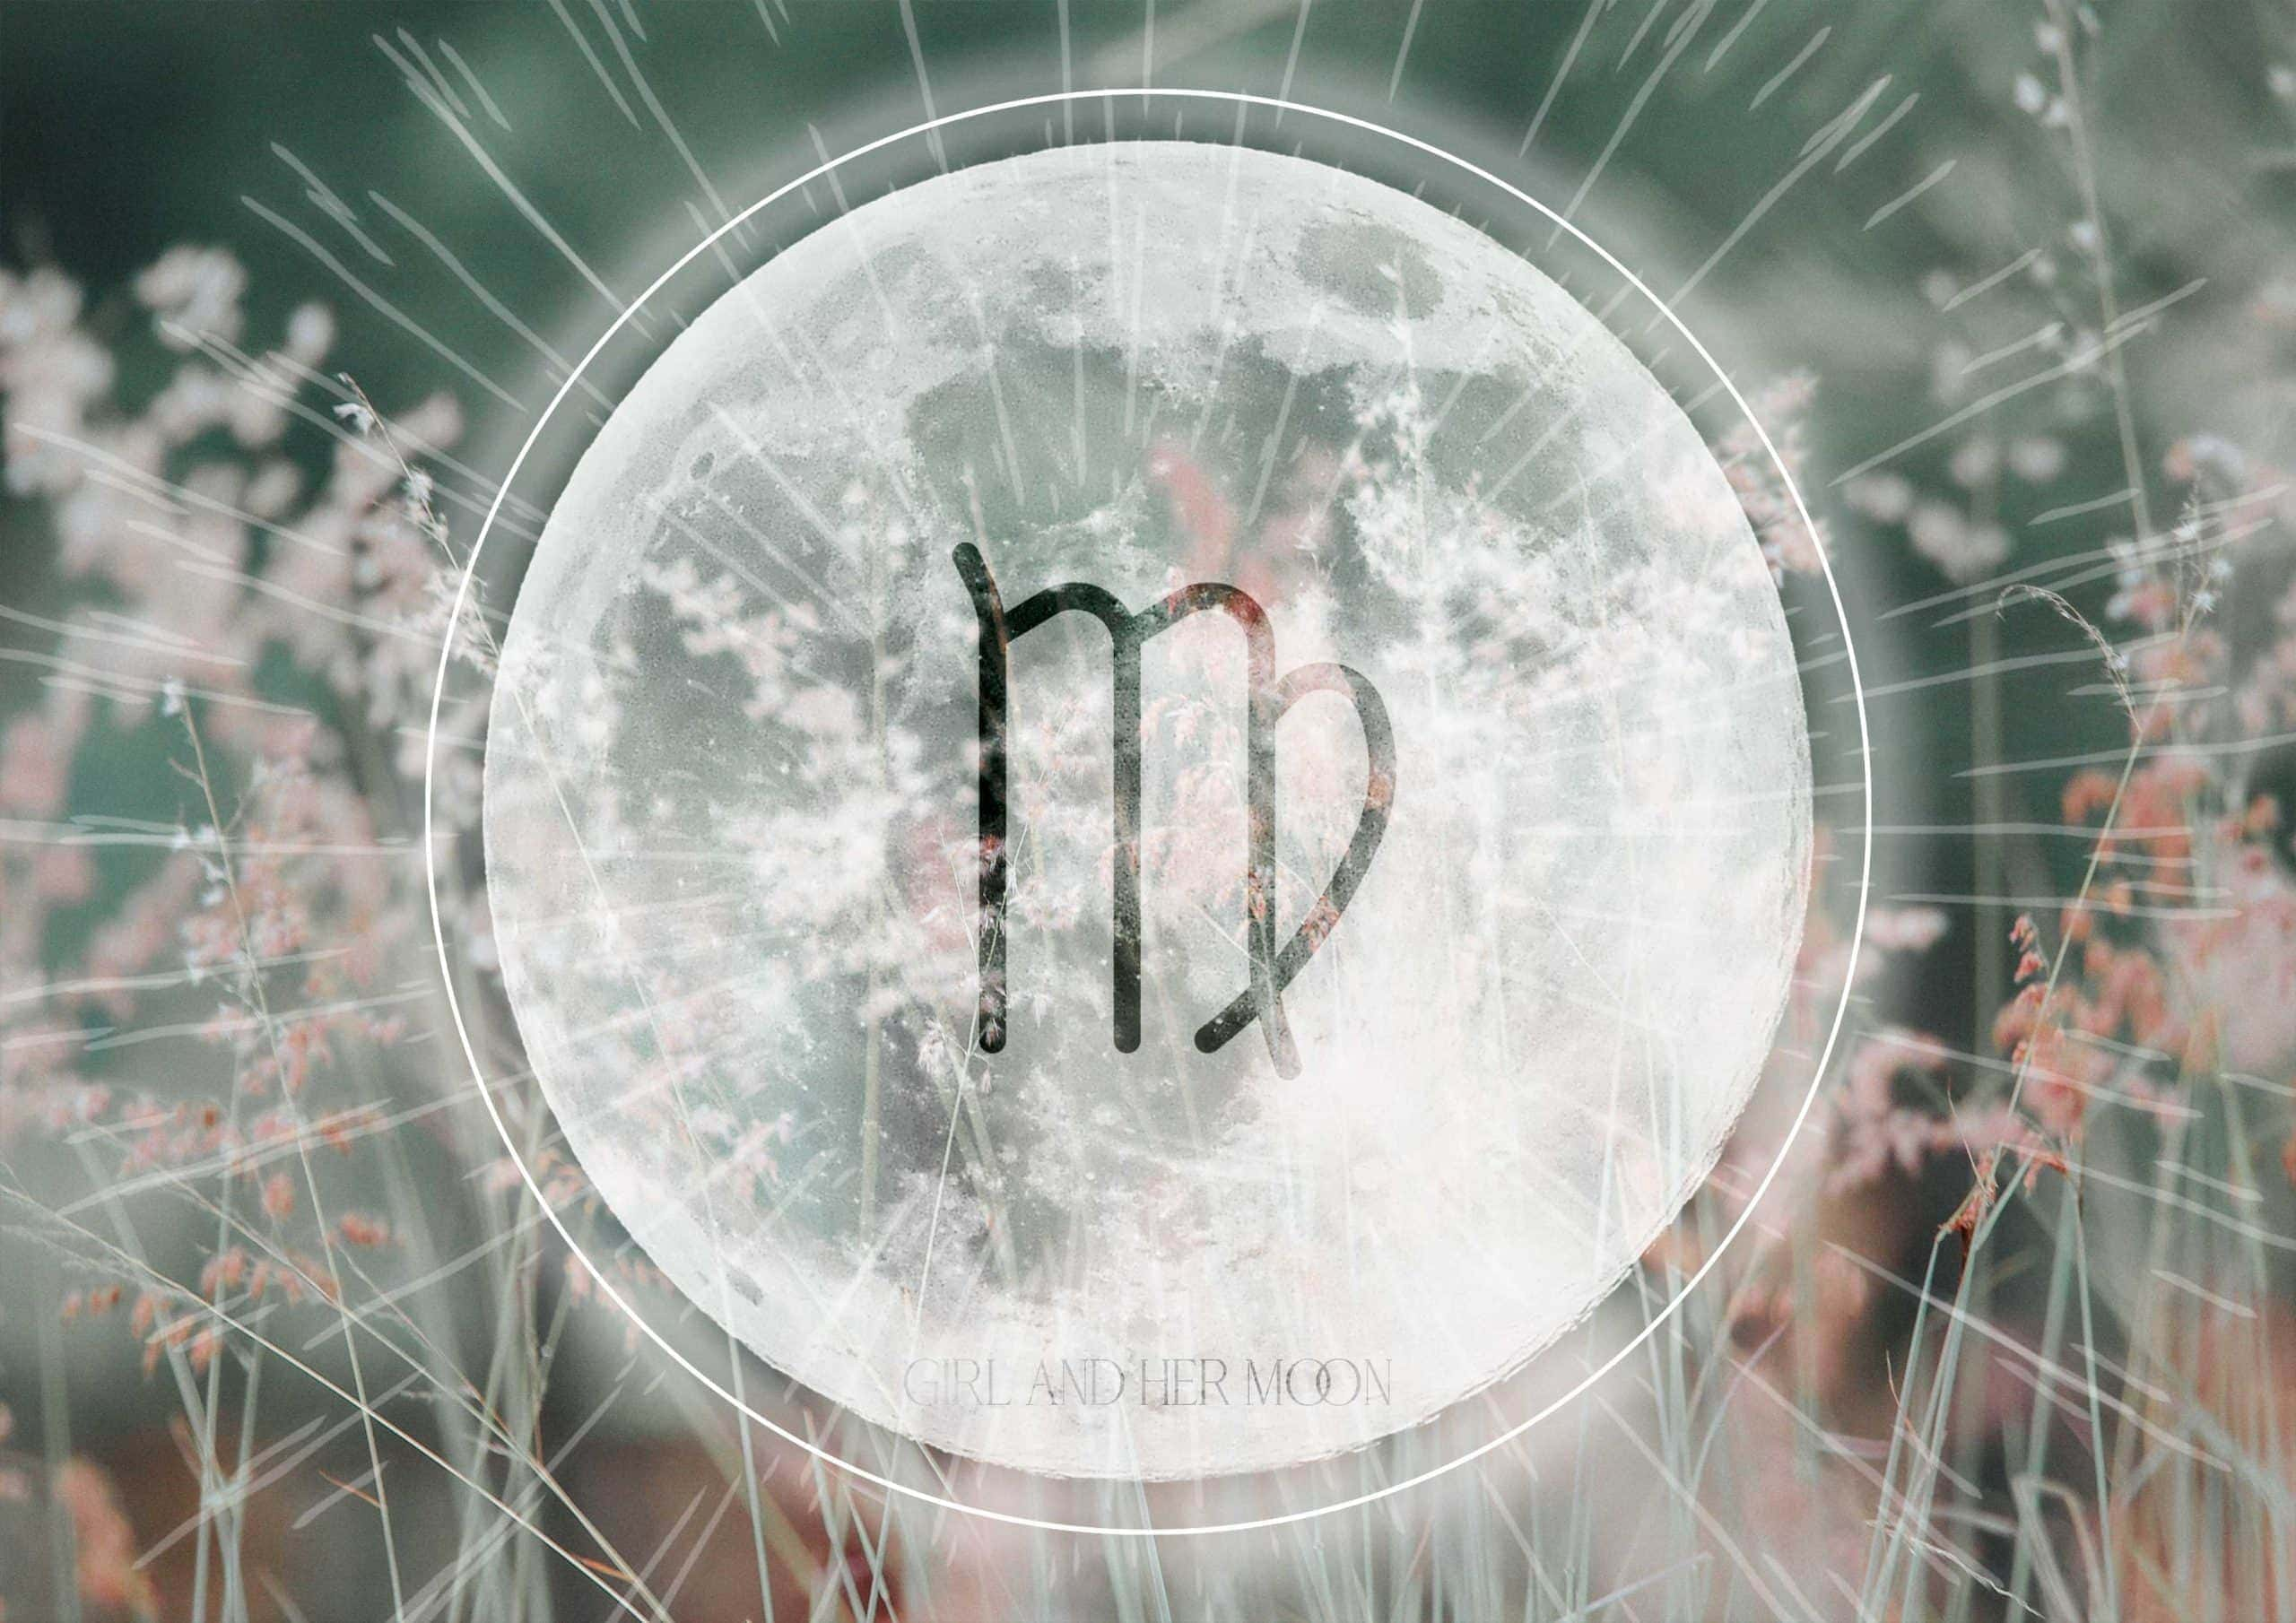 The Powerful Virgo New Moon: September 2020 Girl and Her Moon